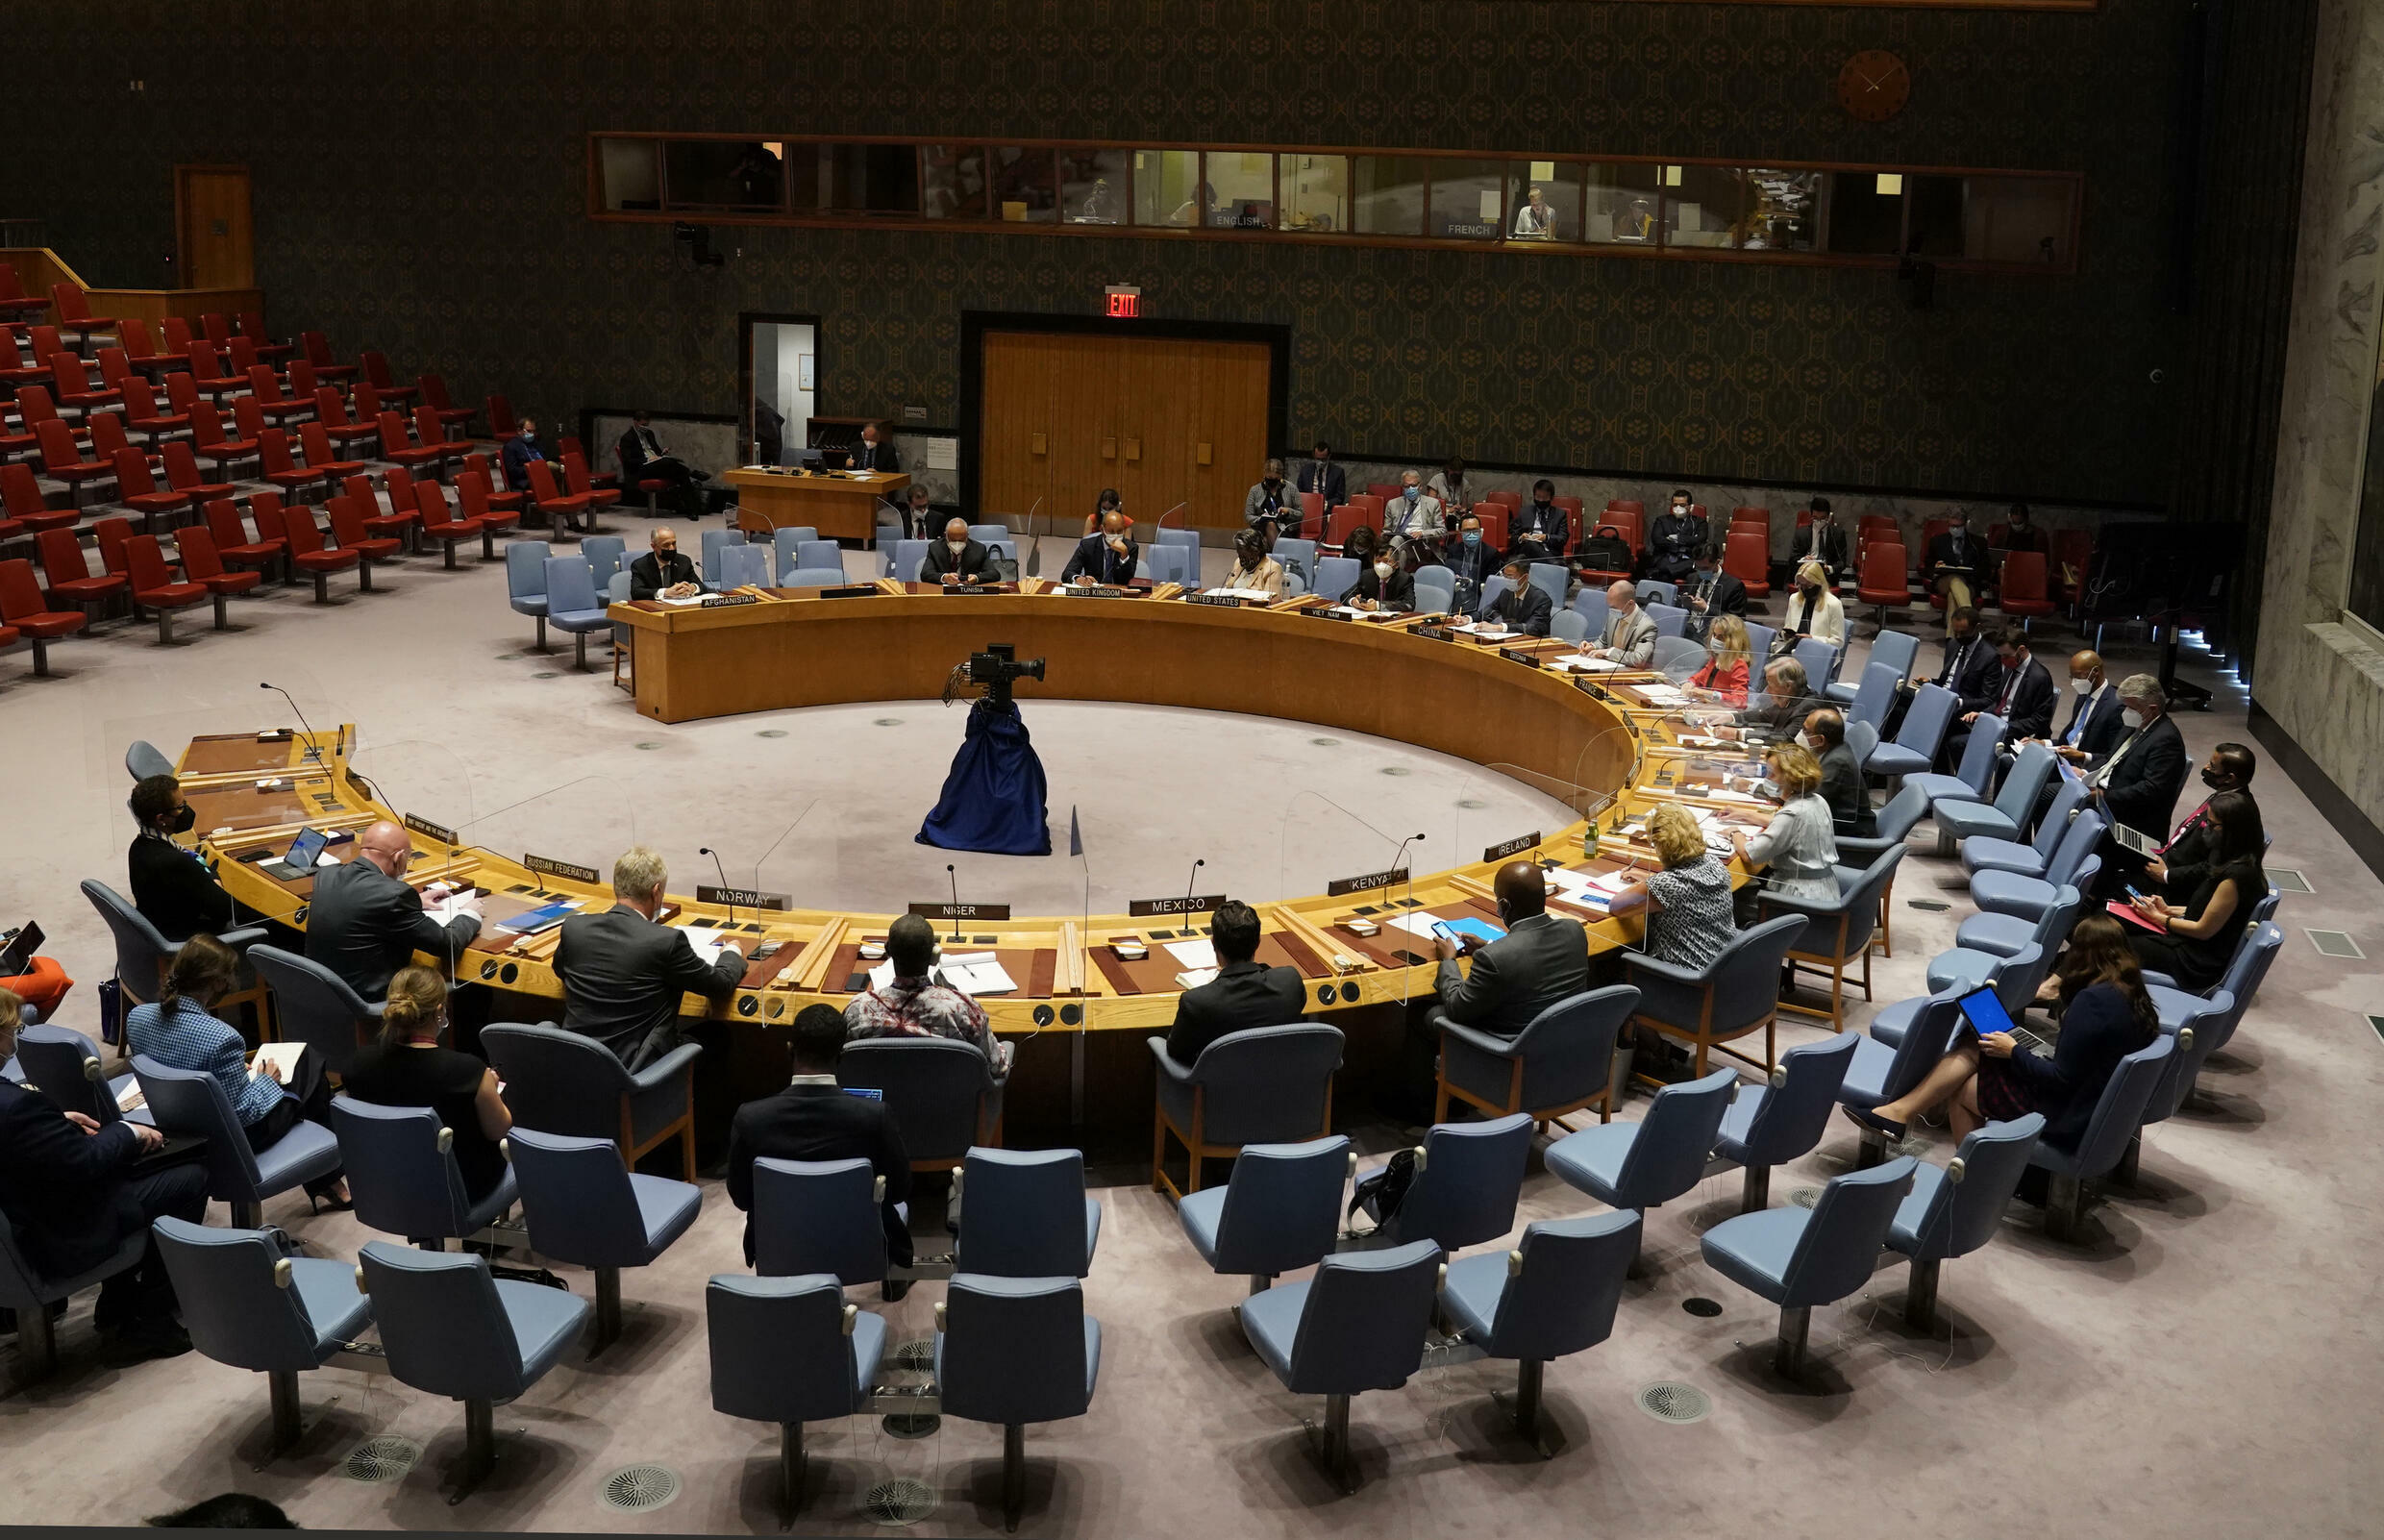 The UN Security Council's resolution says it expects the Taliban to allow an orderly evacuation from Afghanistan